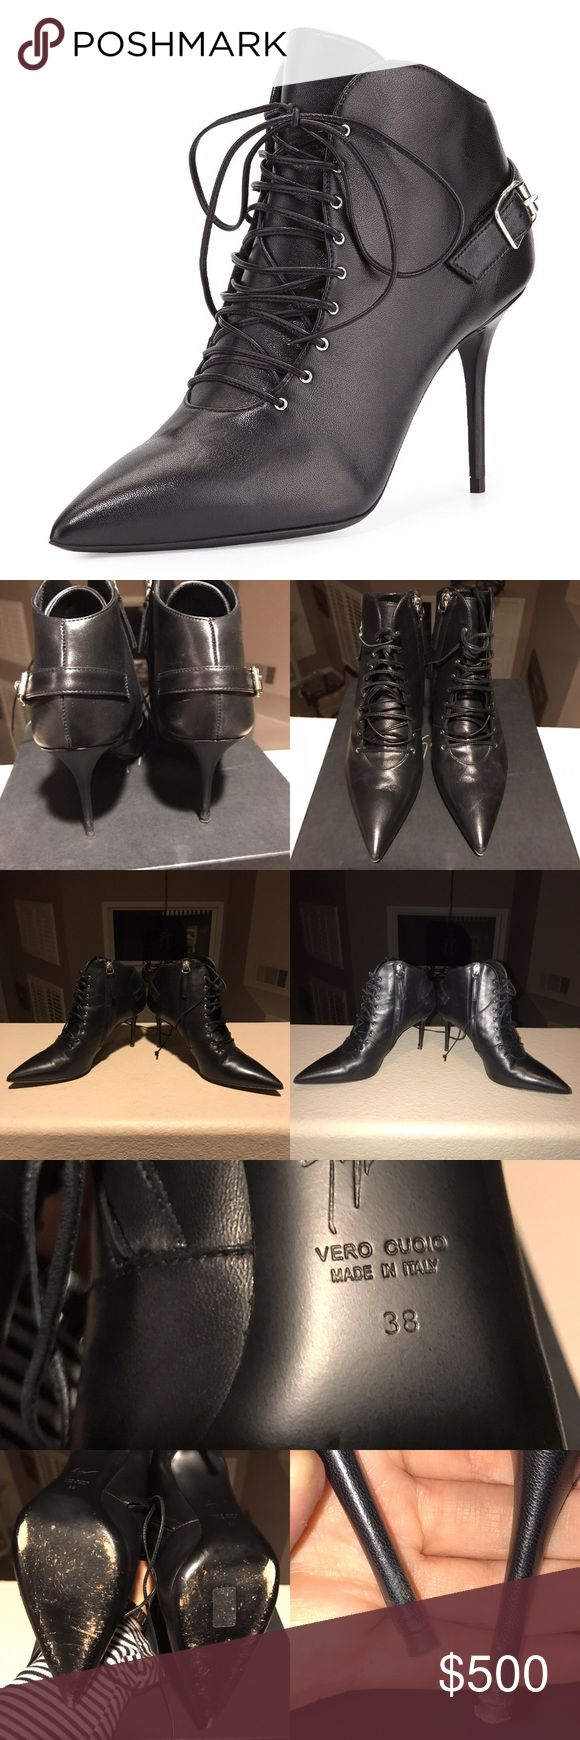 Giuseppe Zanotti Lace Up Black Ankle Booties 100% AUTHENTIC. I purchased these online from Neiman Marcus some time in the Spring of 2016.  I have only worn them once, signs of wear are very minimal and mainly only visible on the bottom of the shoe.   I would say the sizing is true to size, I normally wear 37.5 in most shoes and I felt that these were just a bit too big on me.  NO MODELING!! NO TRADES!!! Giuseppe Zanotti Shoes Ankle Boots & Booties